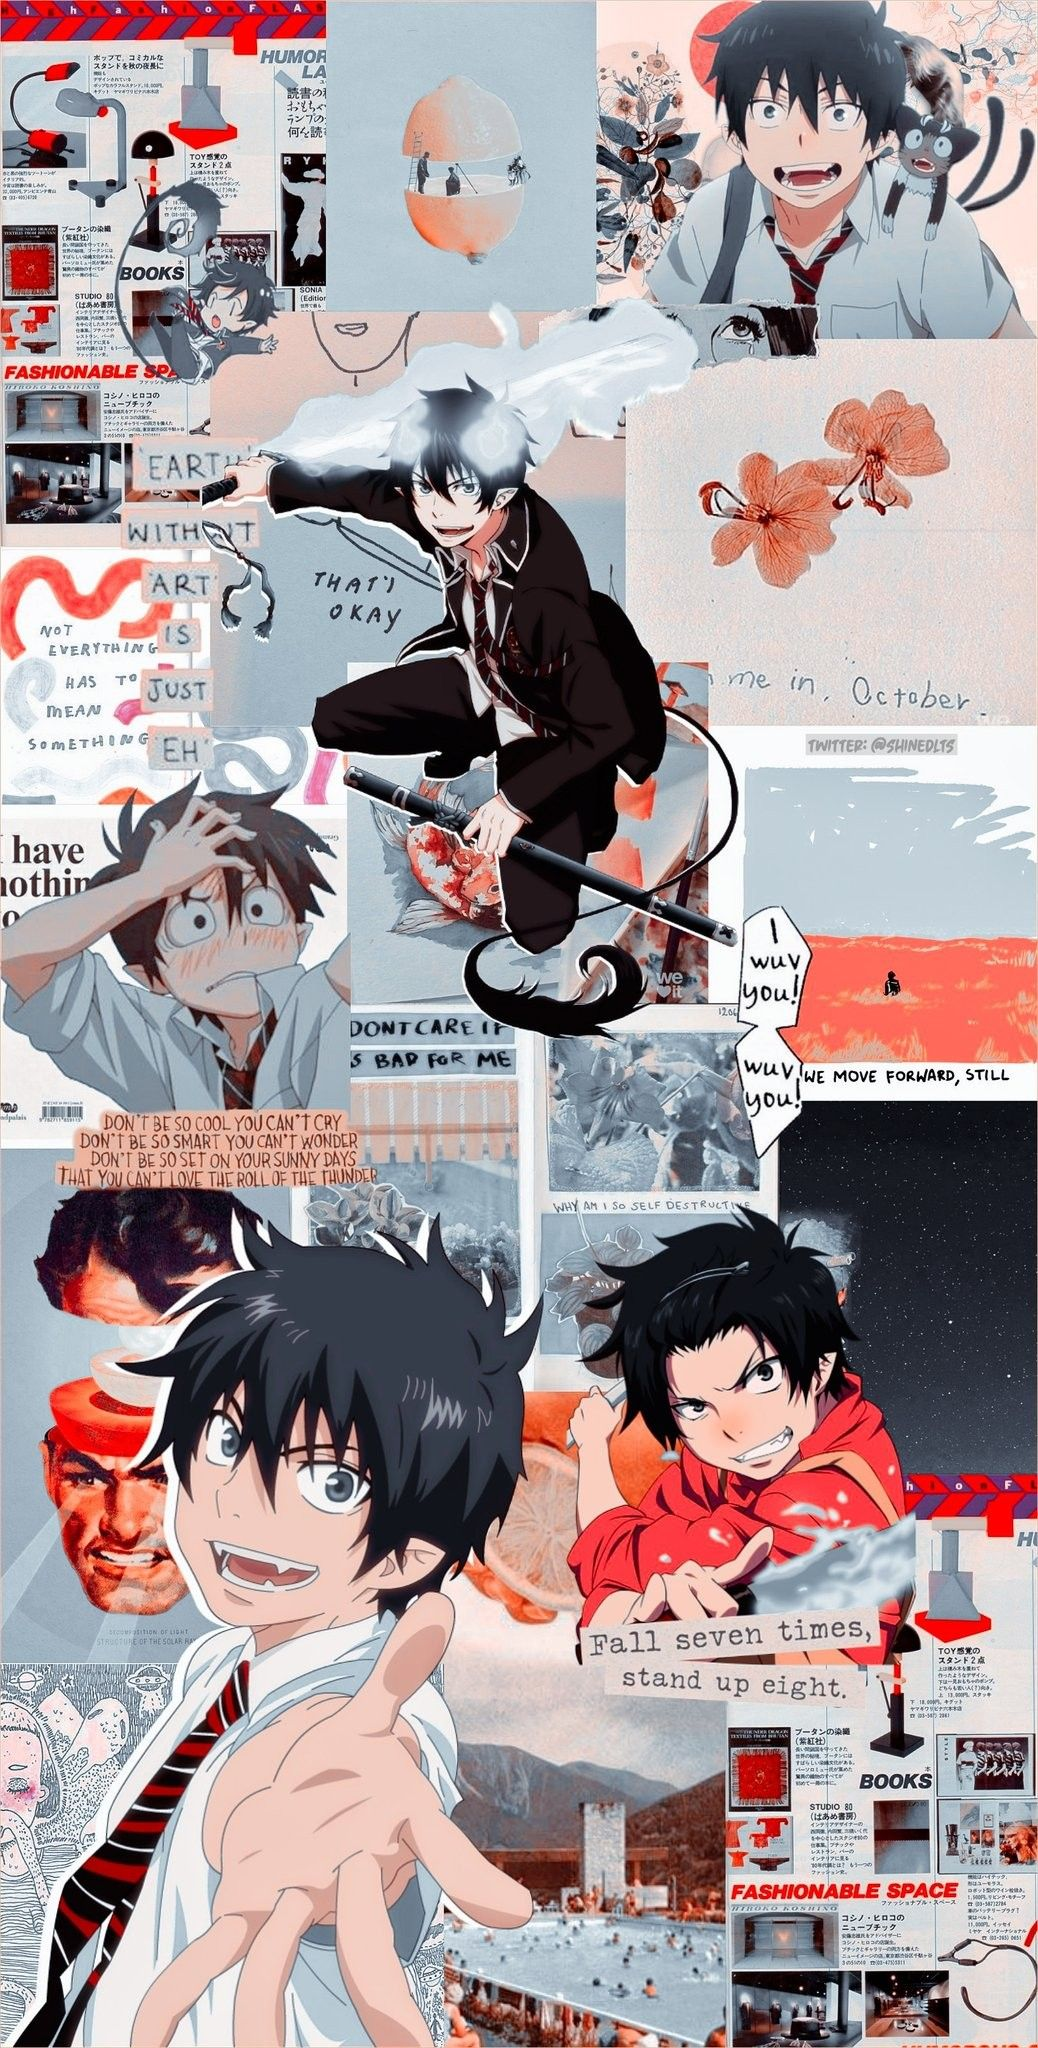 Pin By Levi S Clorox Bottle On Anime Wallpapers In 2020 Blue Exorcist Anime Cool Anime Wallpapers Anime